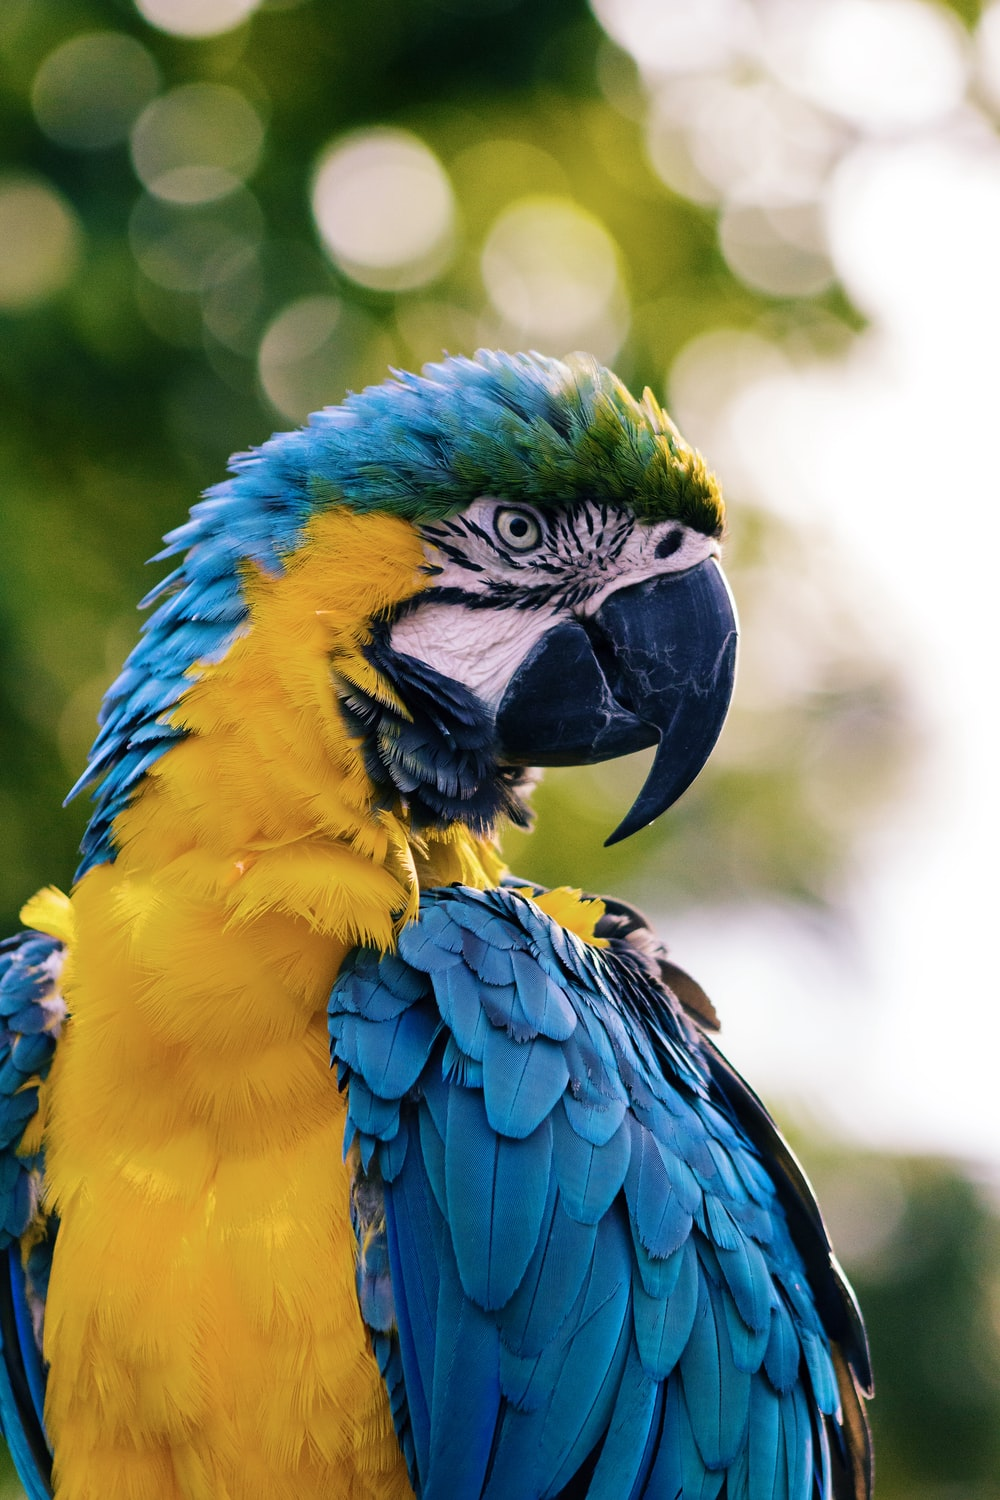 macaw parrot photo by andrew pons imandrewpons on unsplash